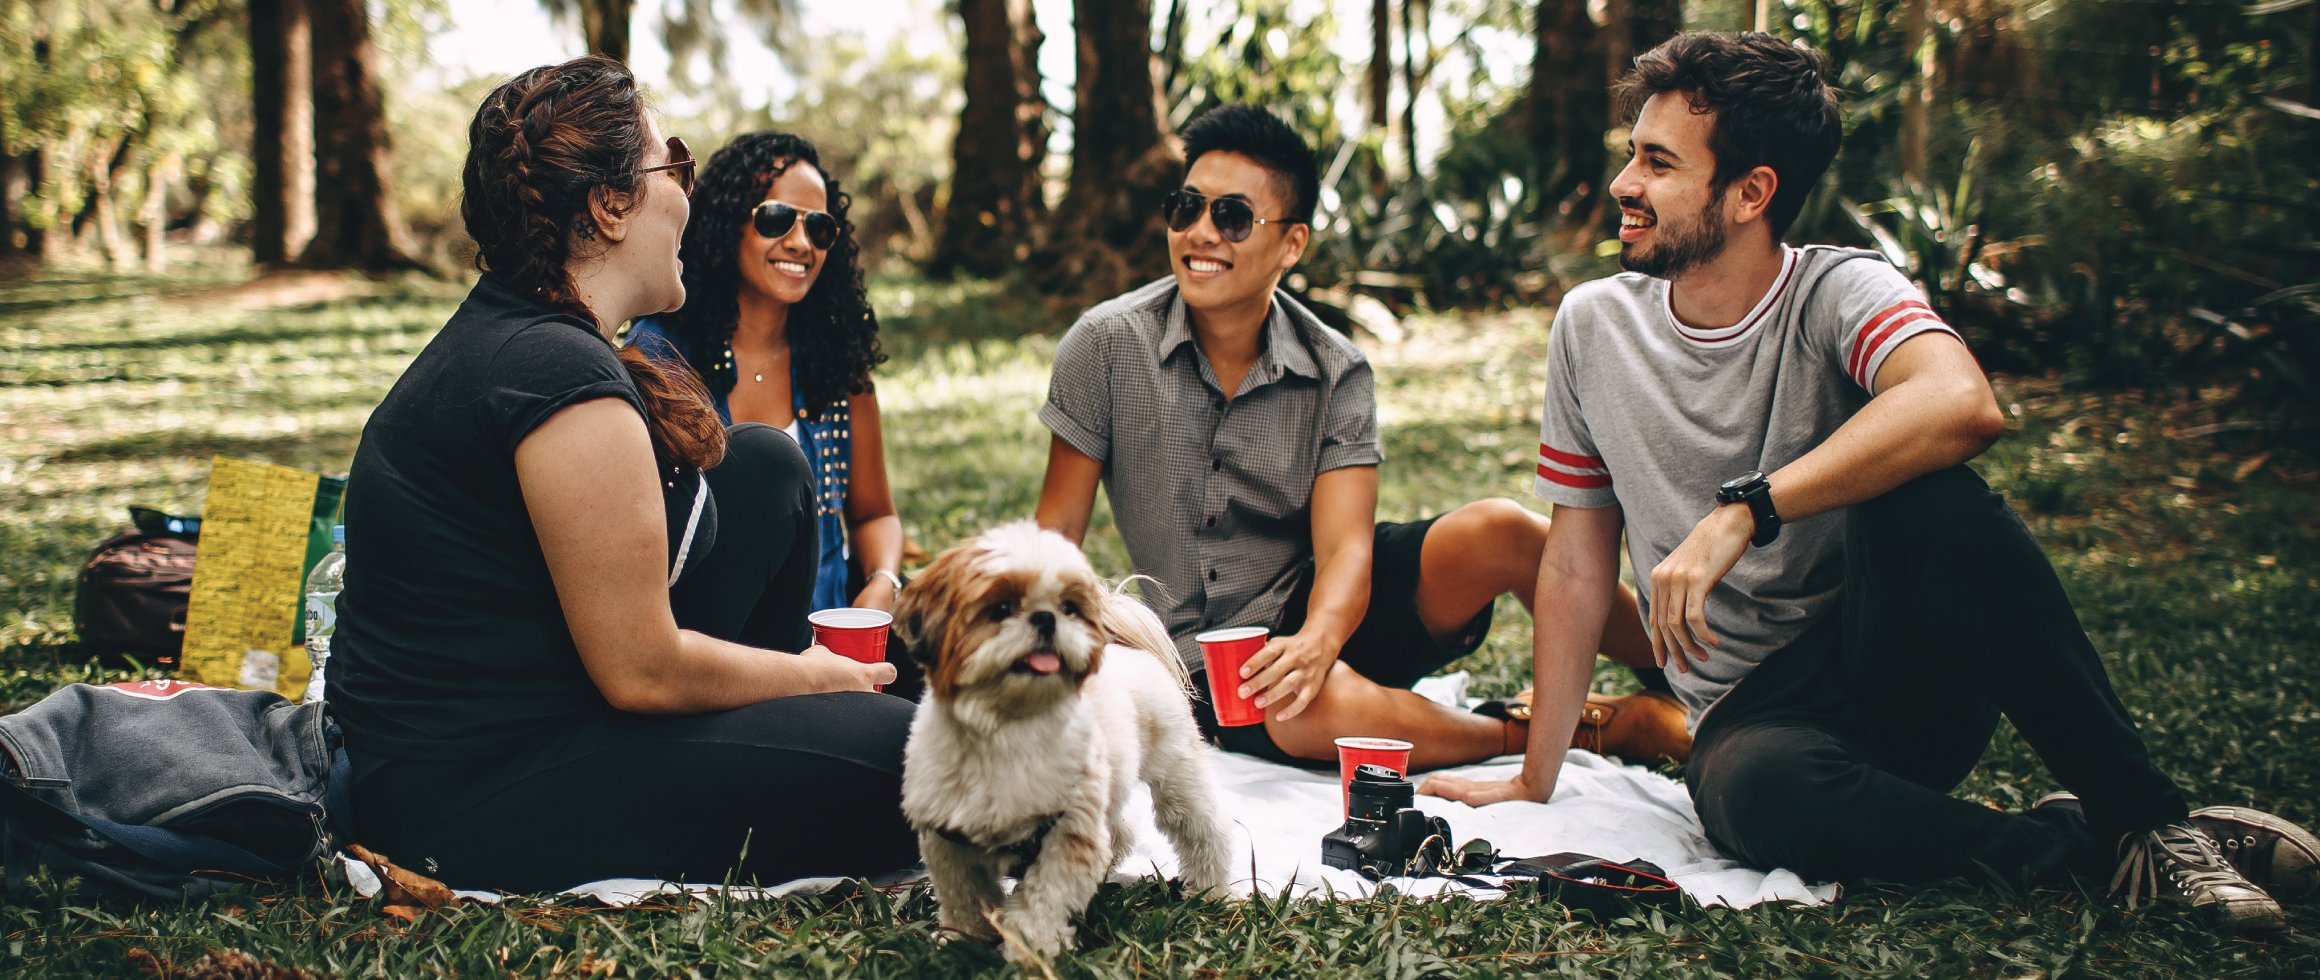 Meet the 3 work friends you should cultivate